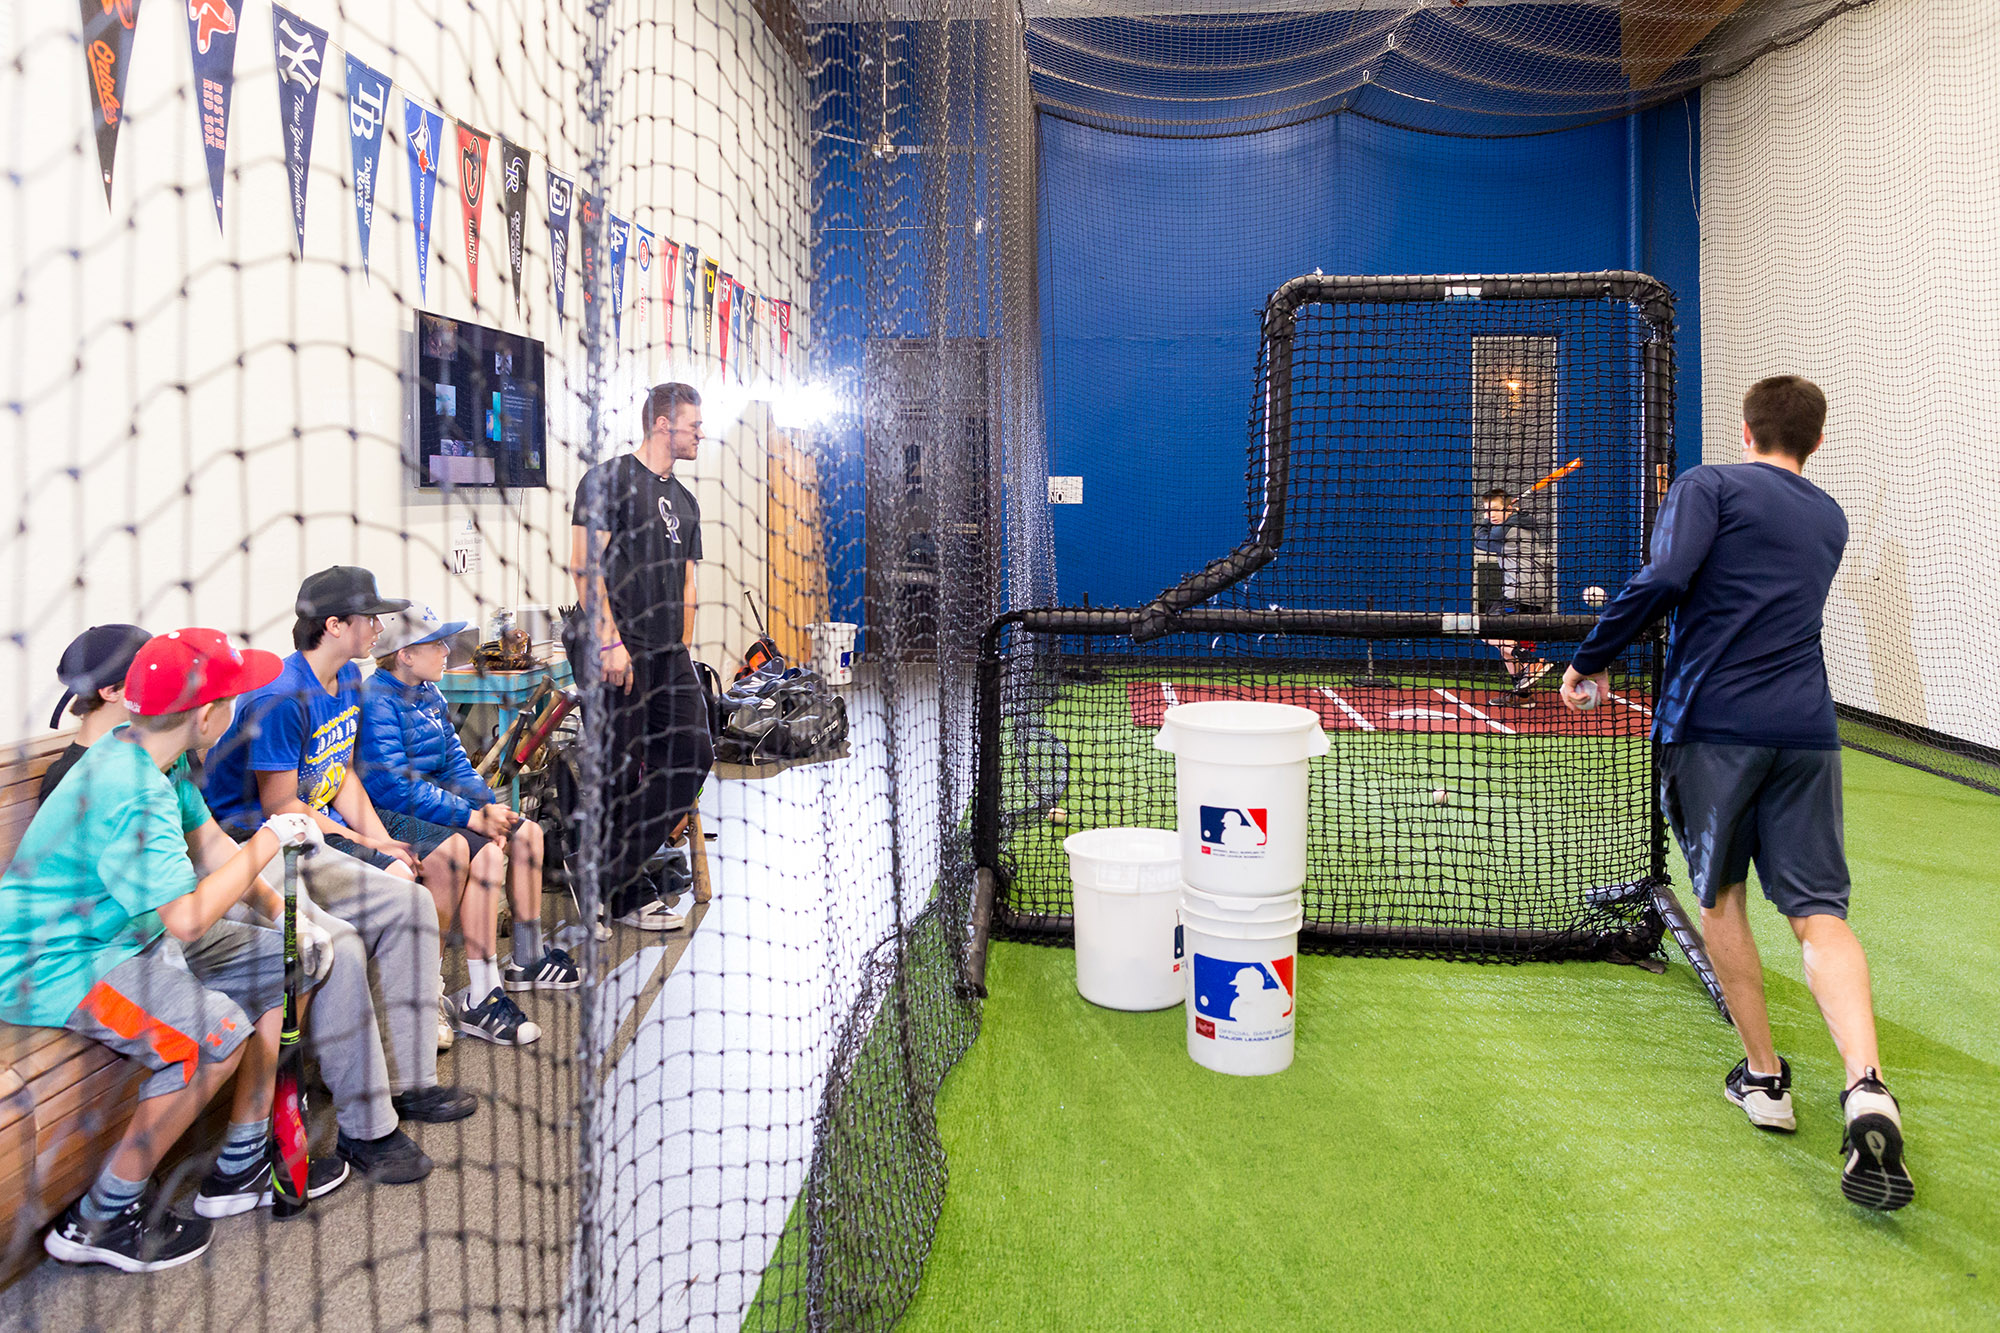 Baseball Development Class in Session at Paradigm Sport